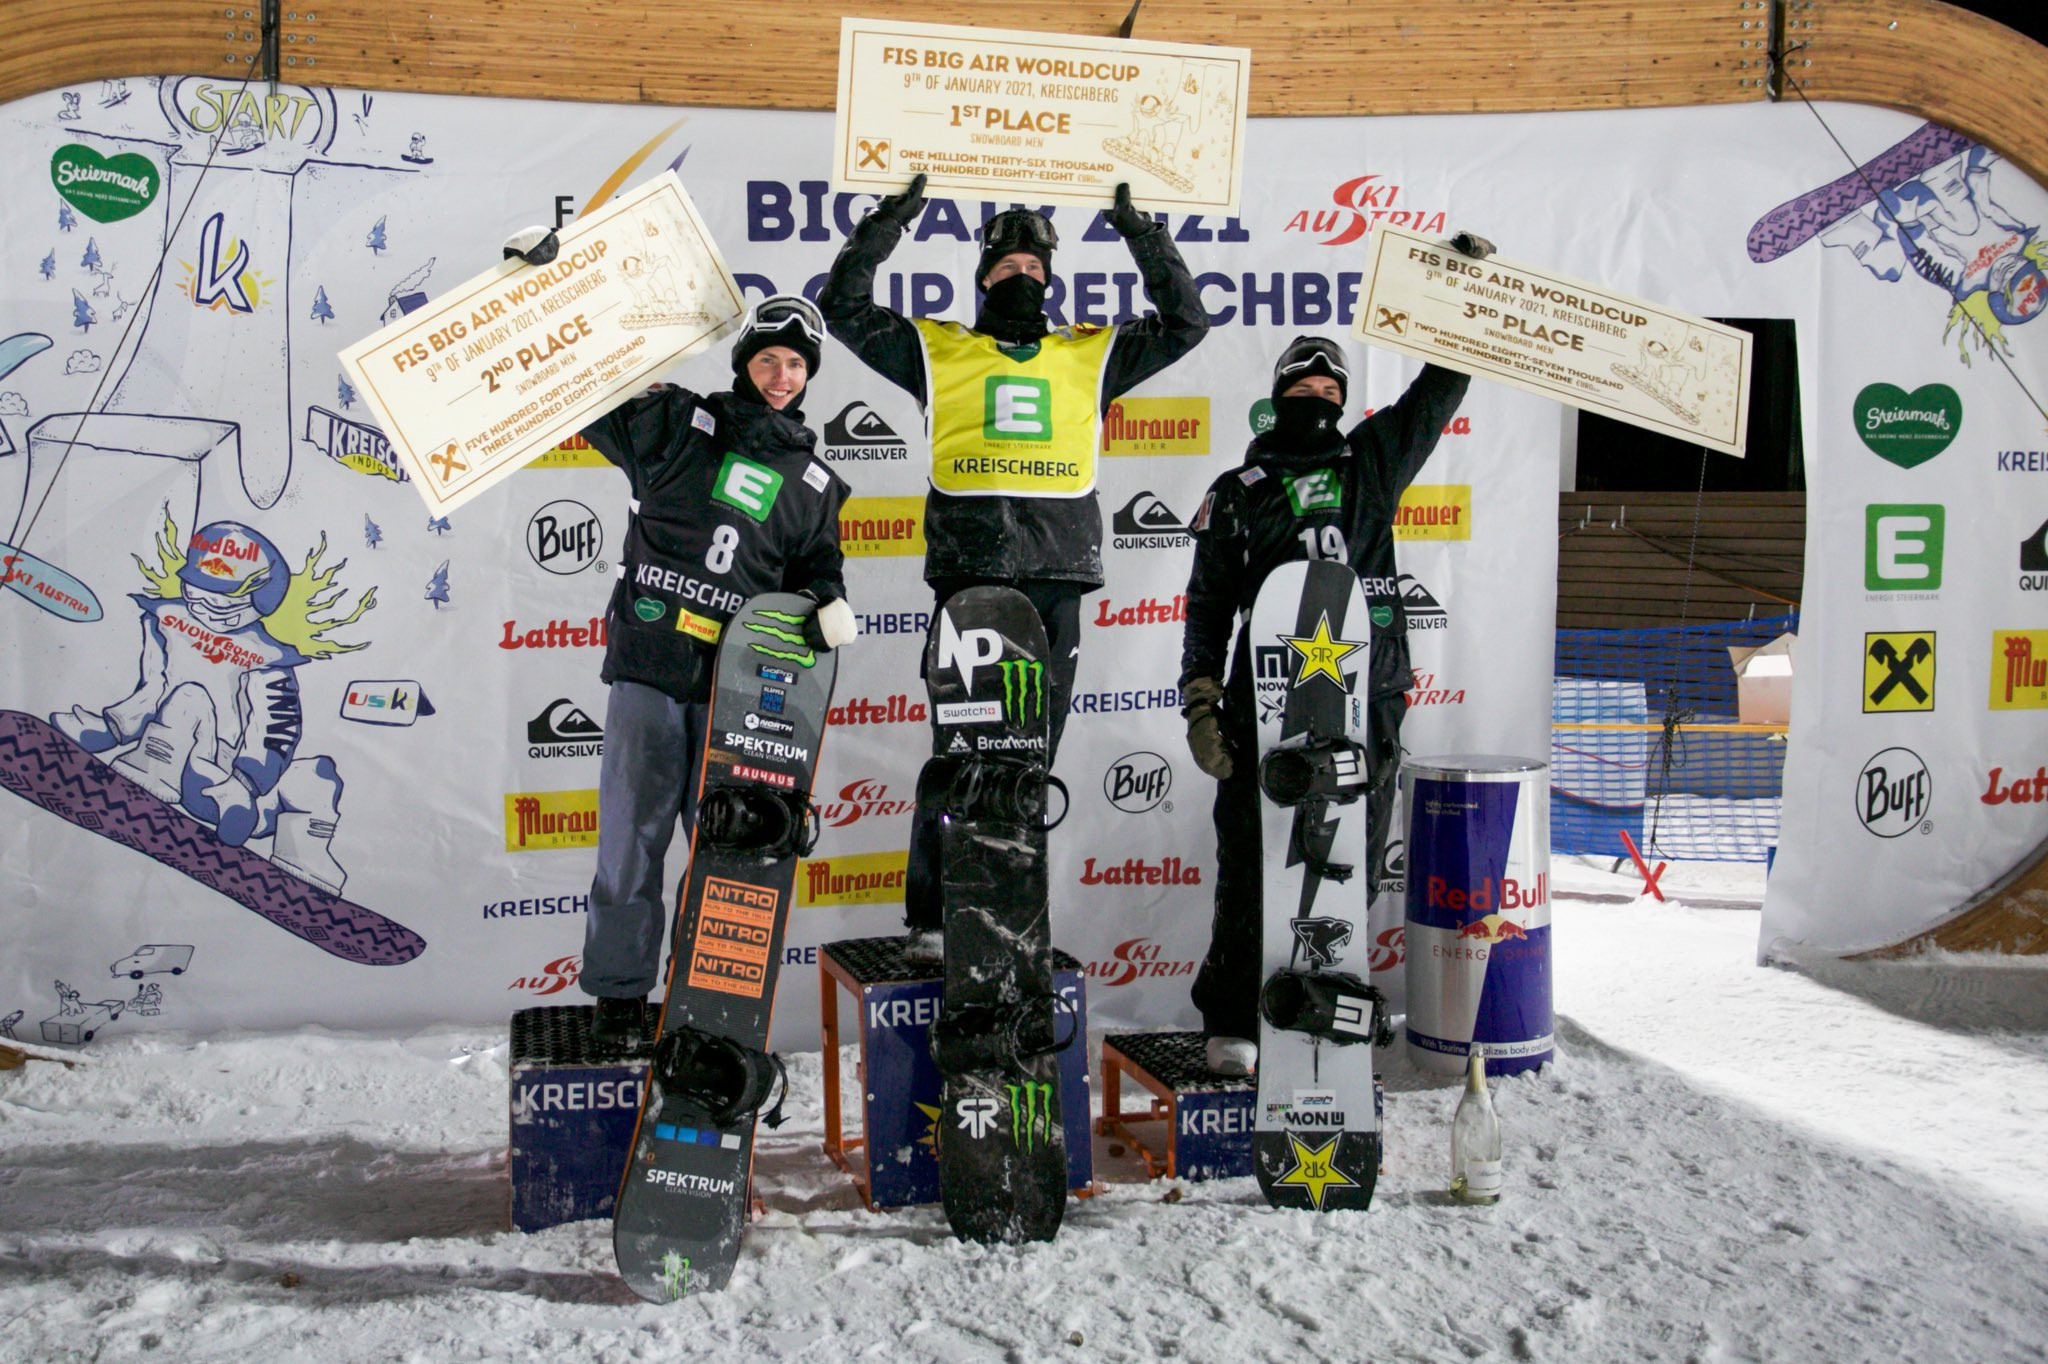 Parrot and Sadowski Synnott take FIS Snowboard World Cup Big Air titles